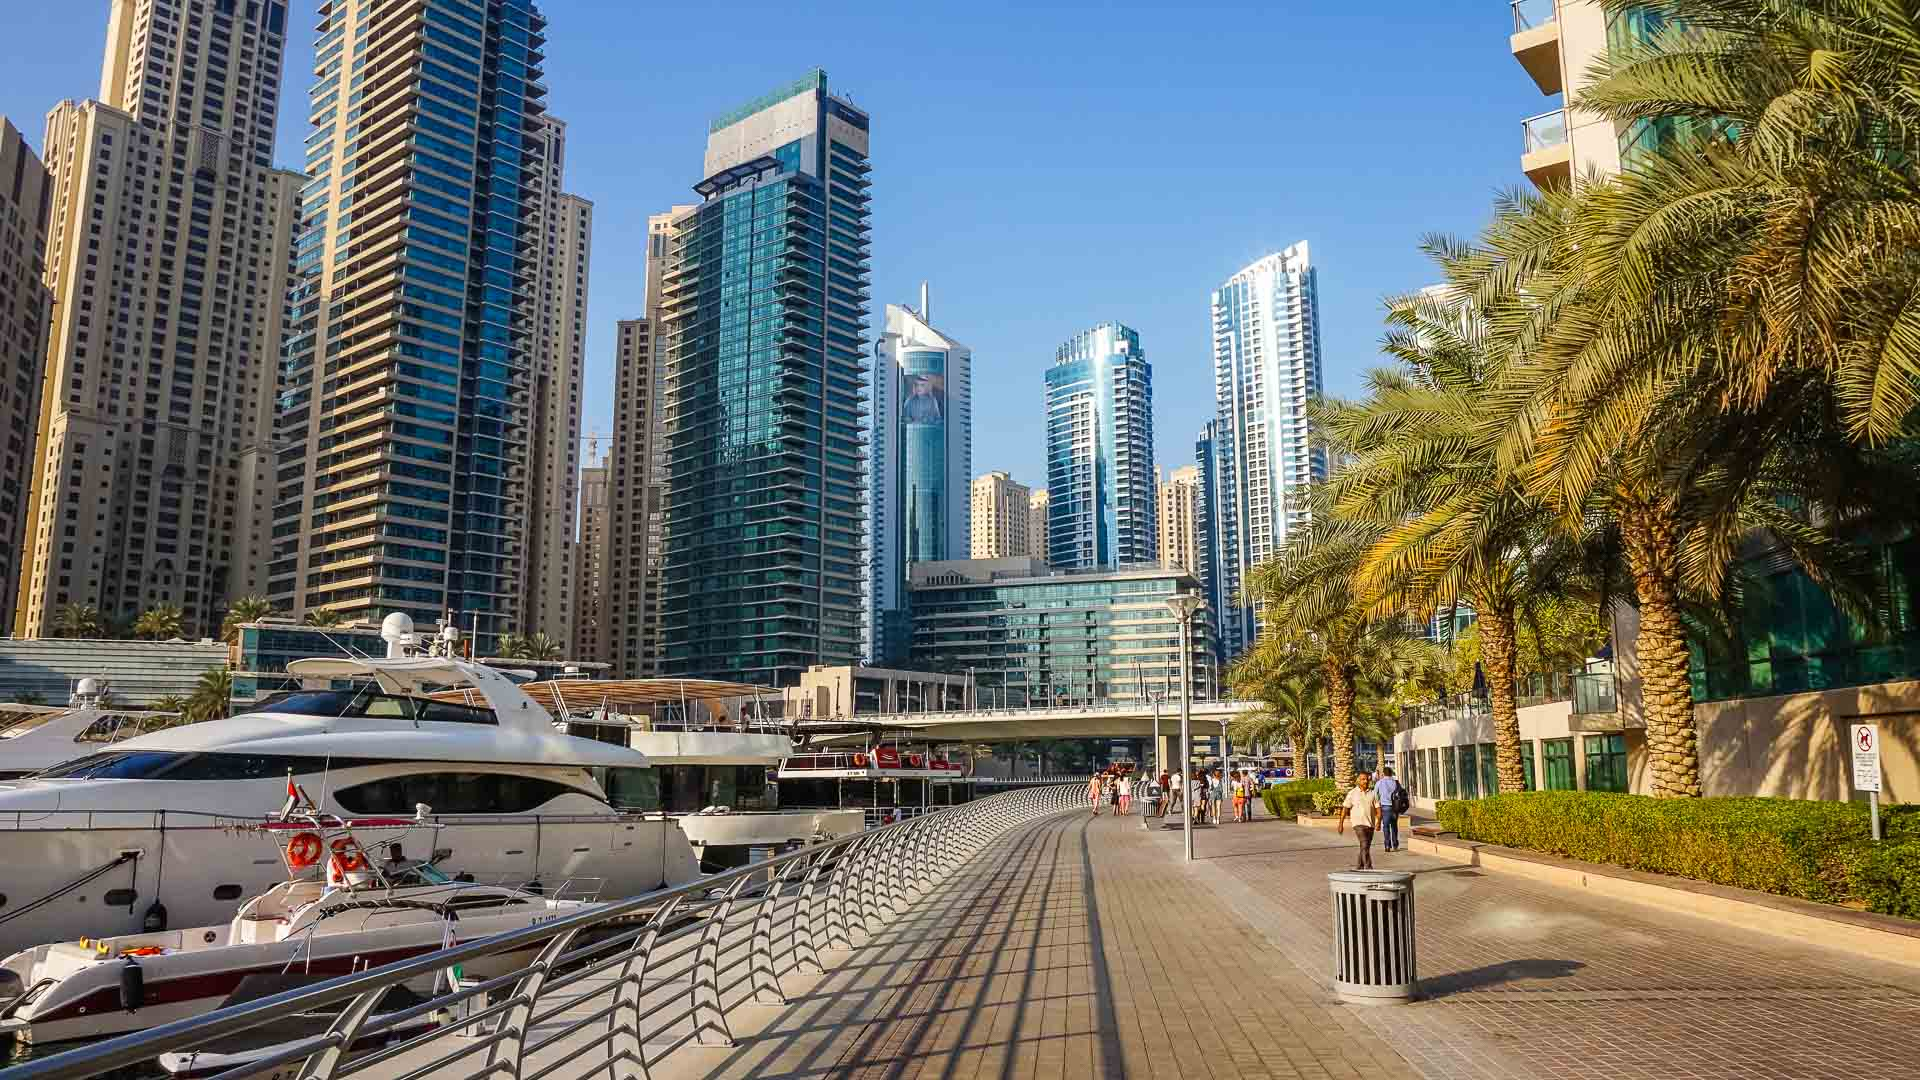 Part of Marina Walk. The 1.7km long walking route along the Marina Harbour